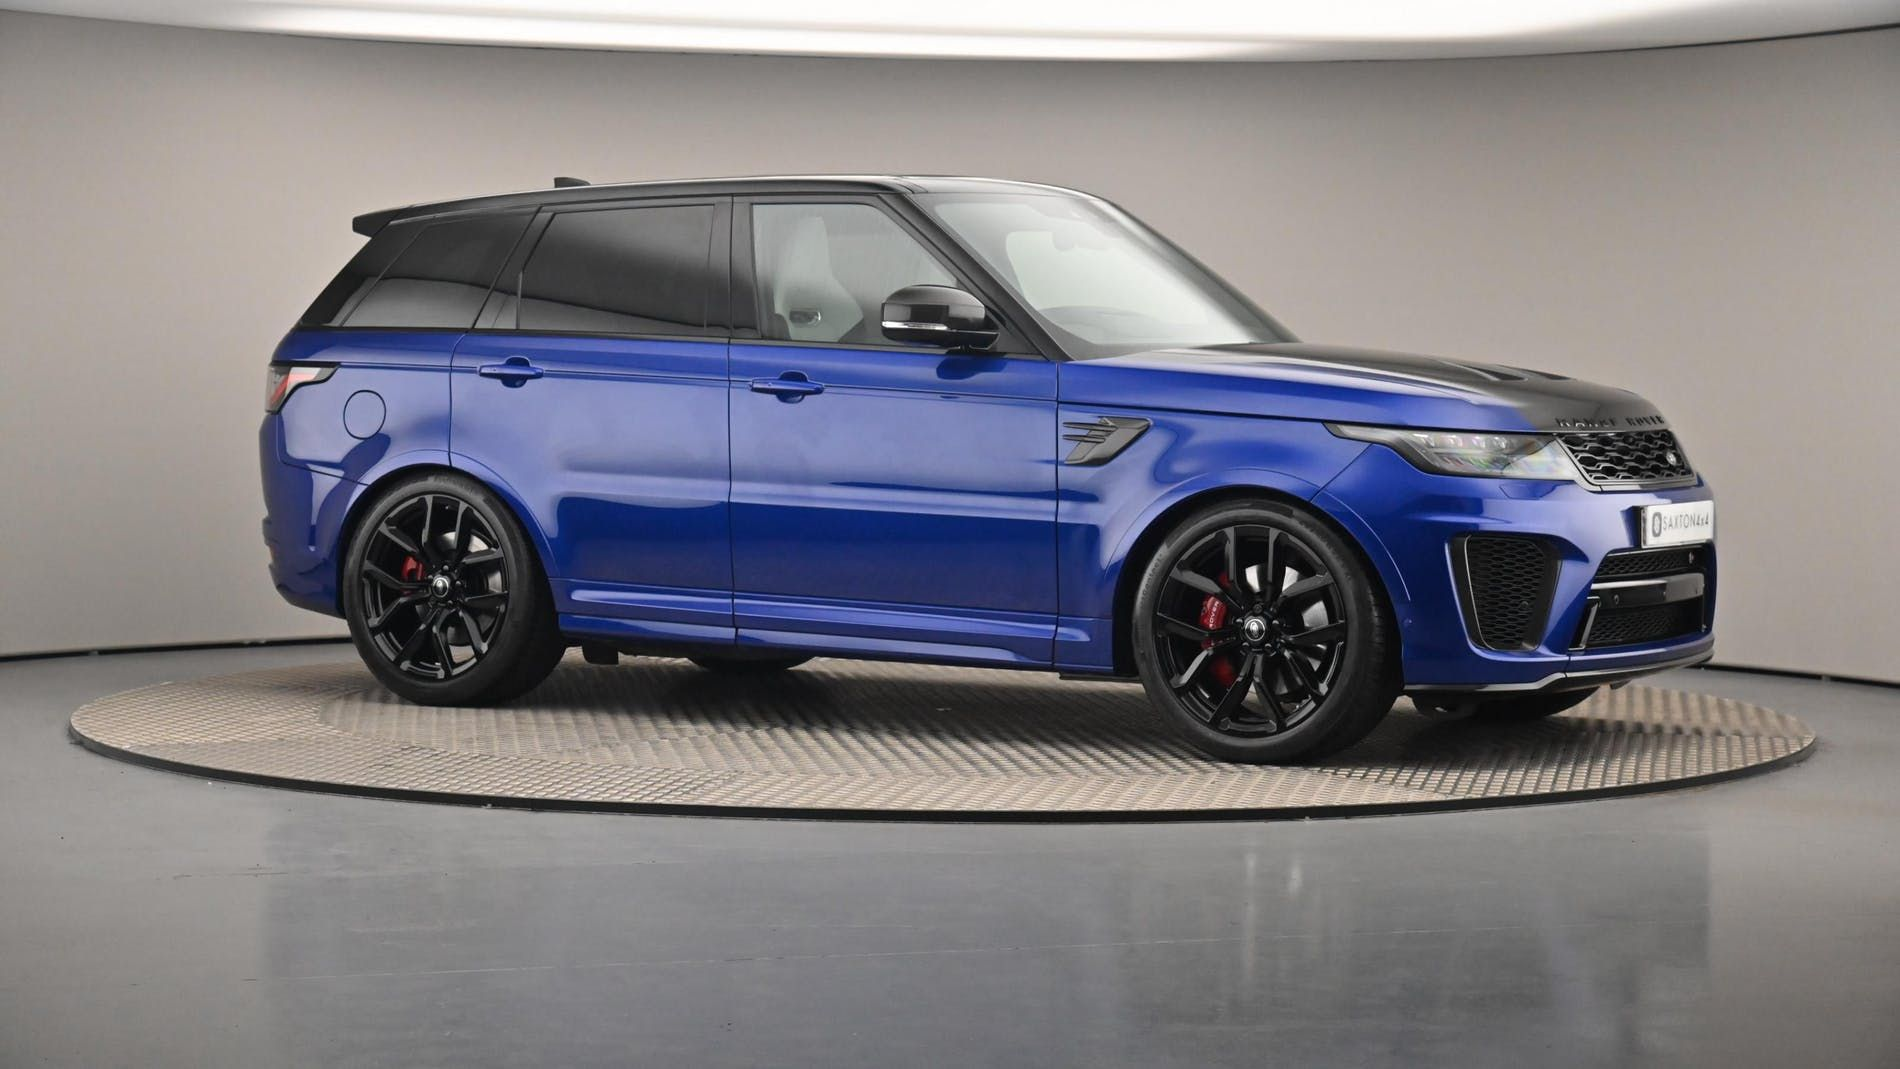 Used Land Rover Range Rover Sport S C Svr Blue For Sale Essex Ou19xcn Saxton 4x4 Range Rover Sport Used Range Rover Range Rover